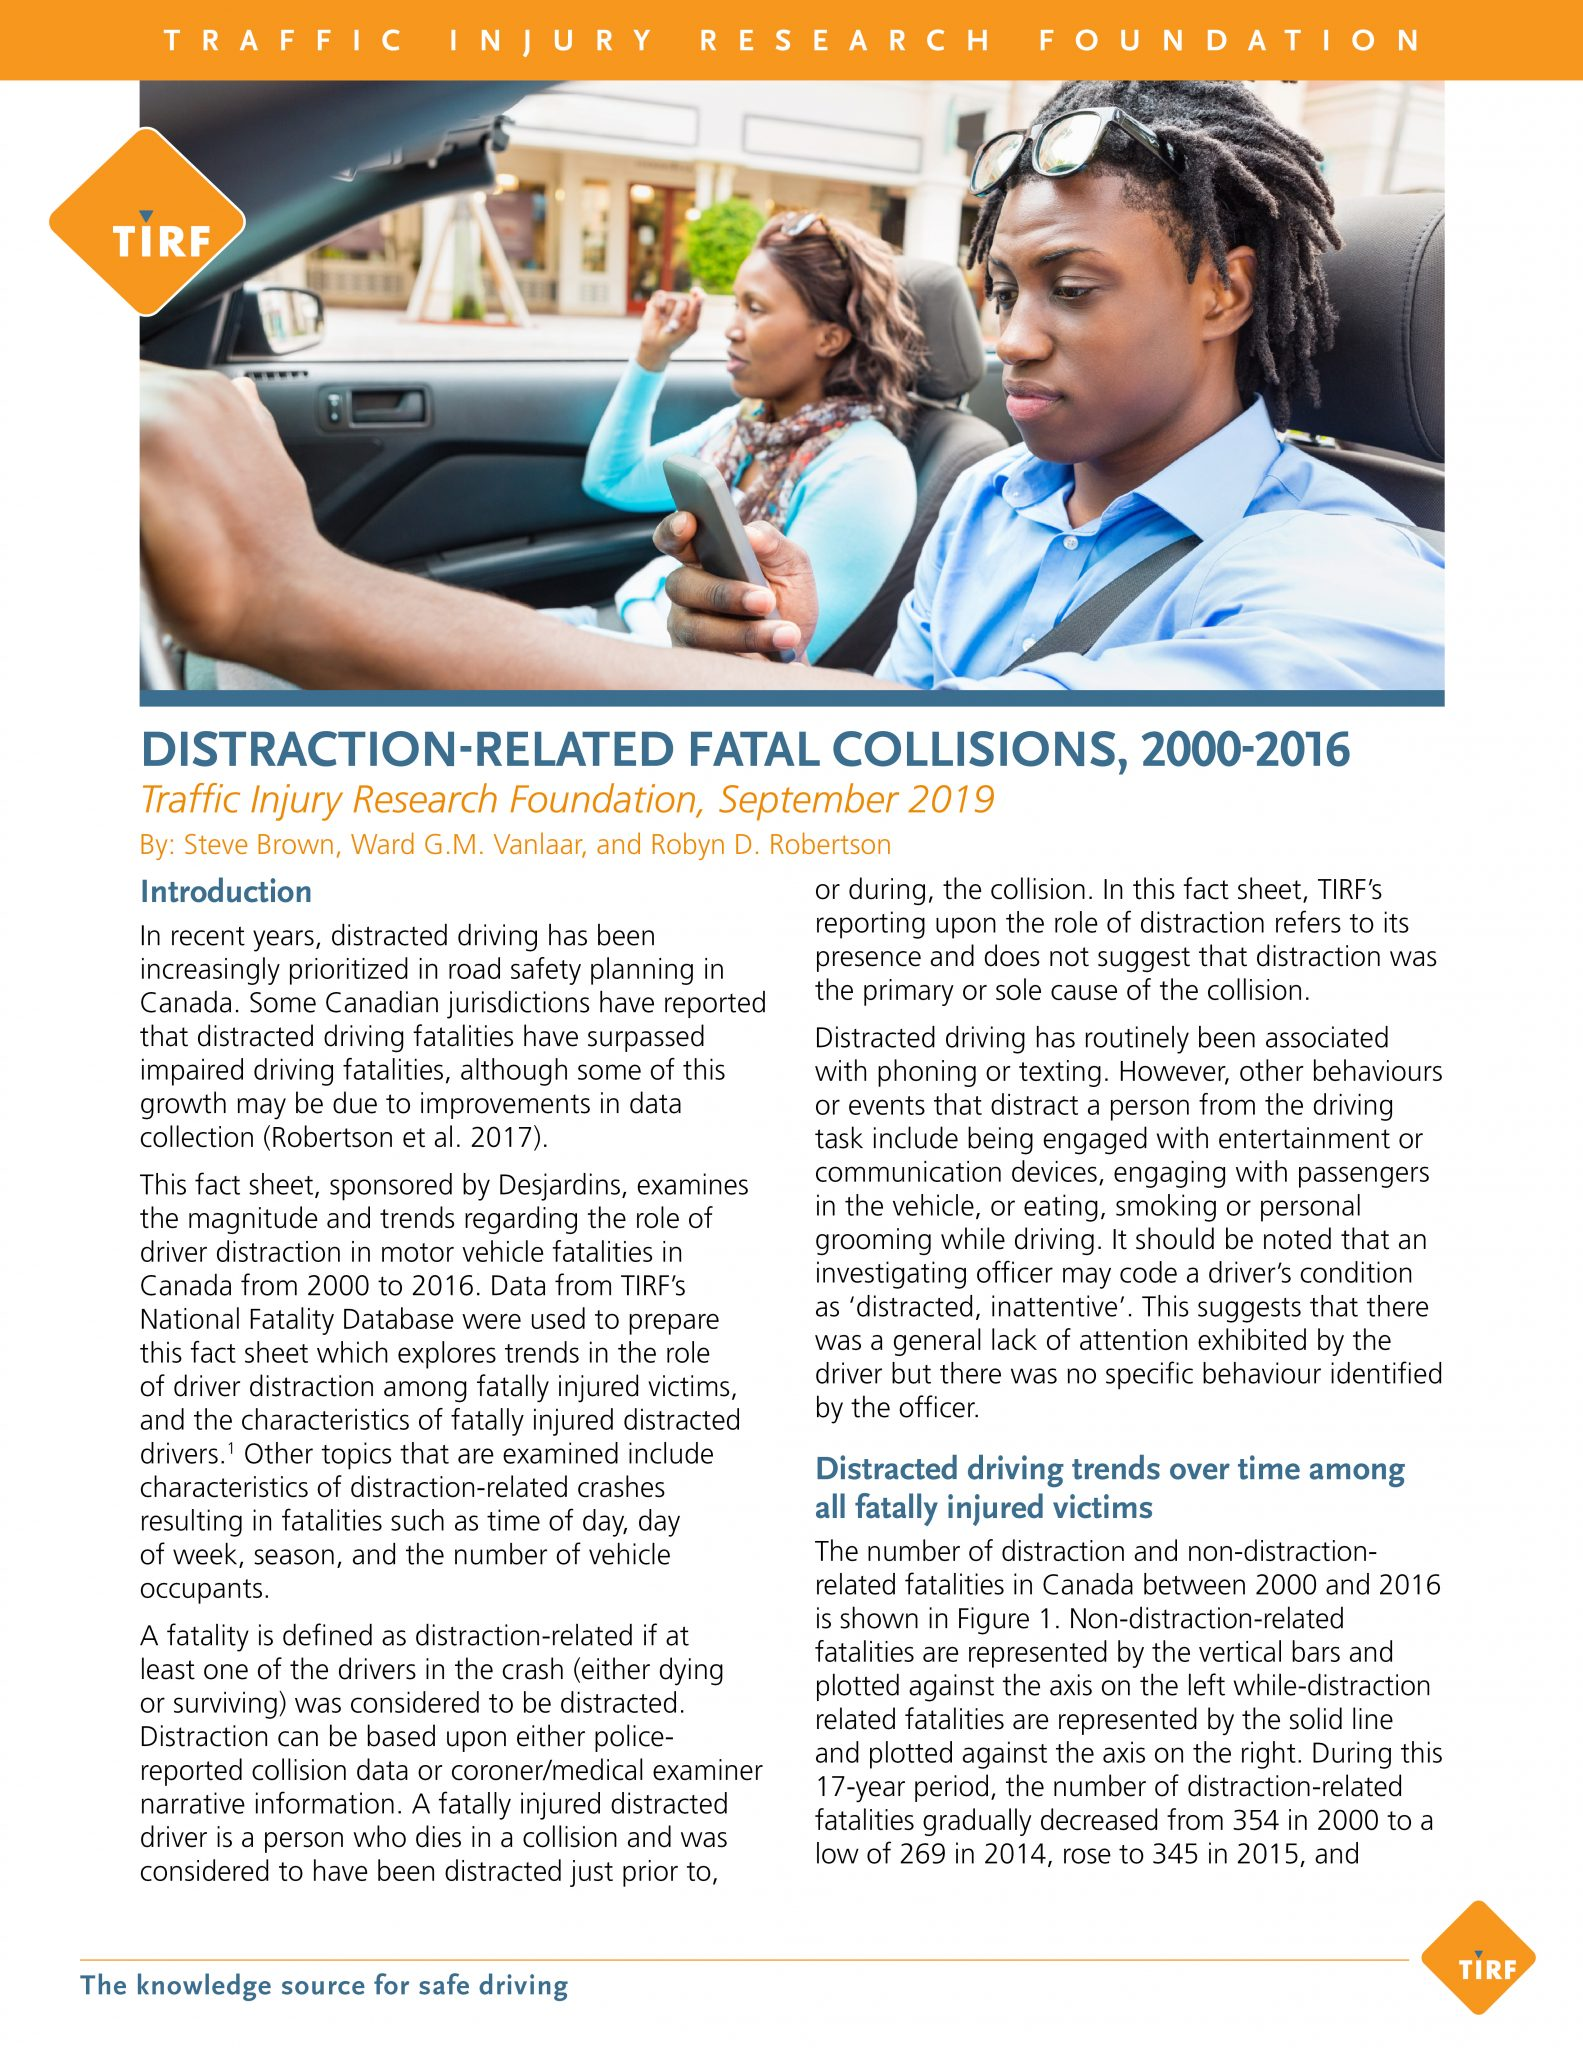 Distraction-Related Fatal Collisions, 2000-2016